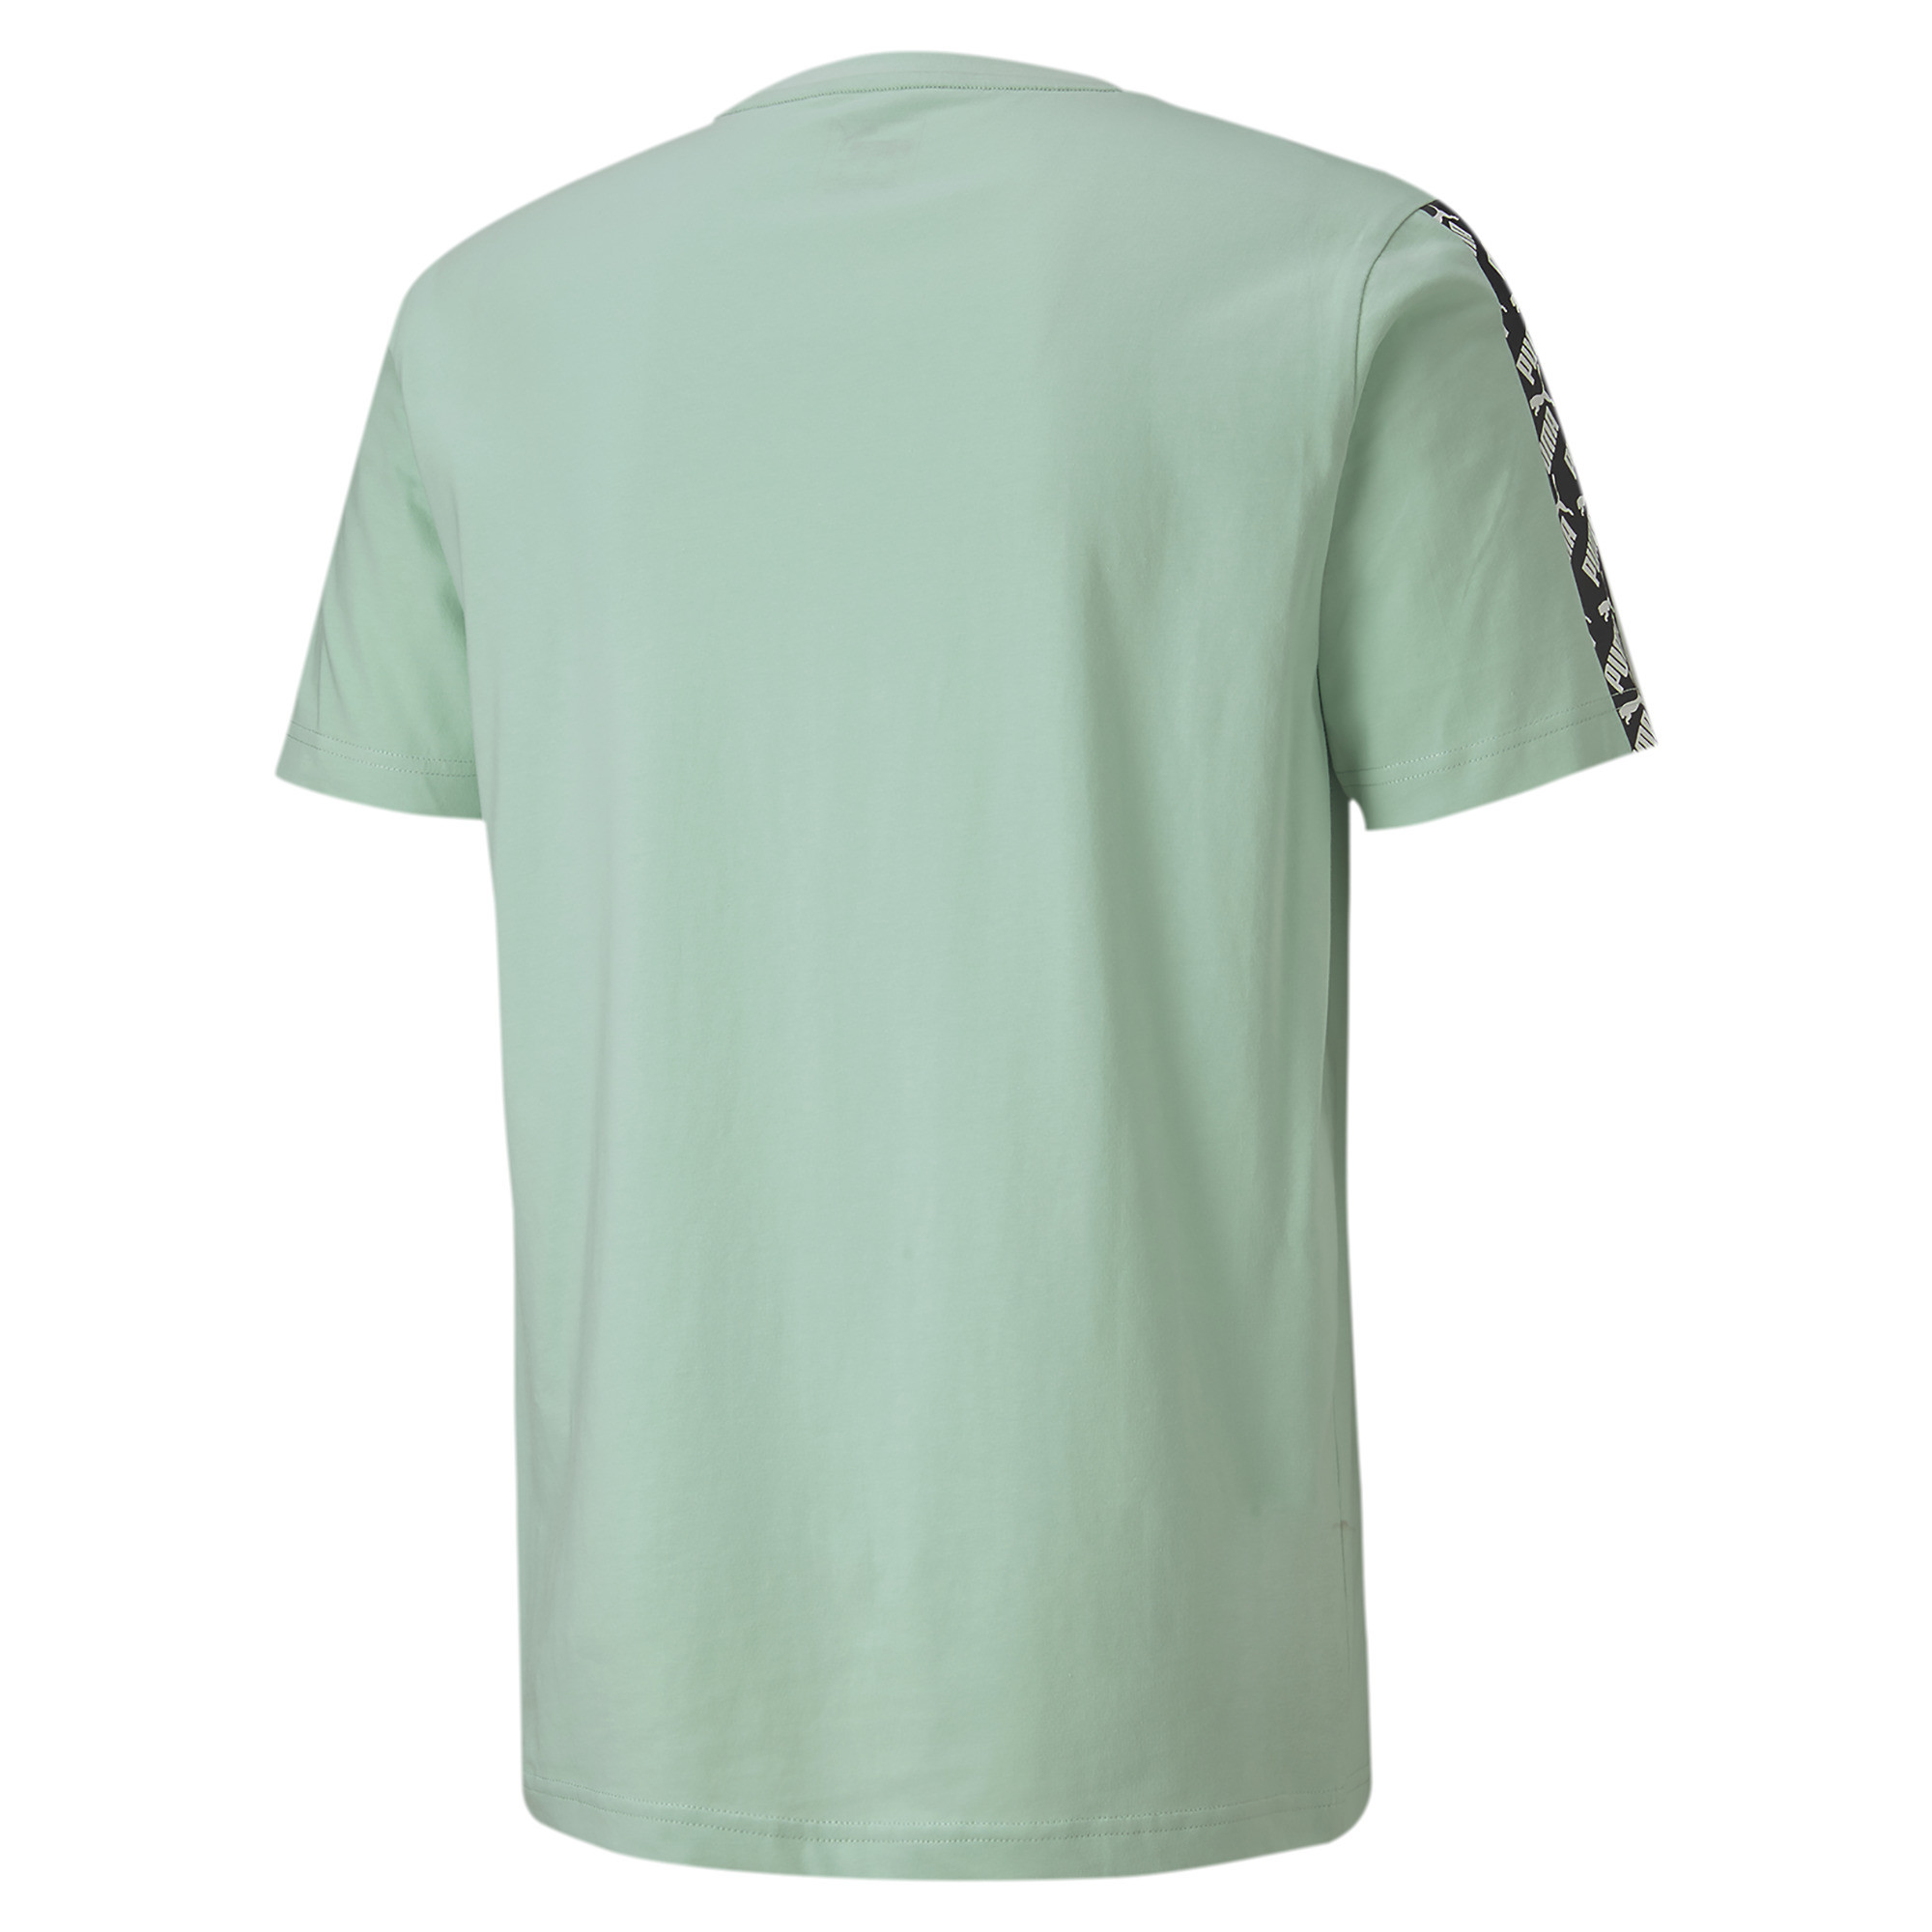 PUMA-Amplified-Men-039-s-Tee-Men-Tee-Basics thumbnail 15